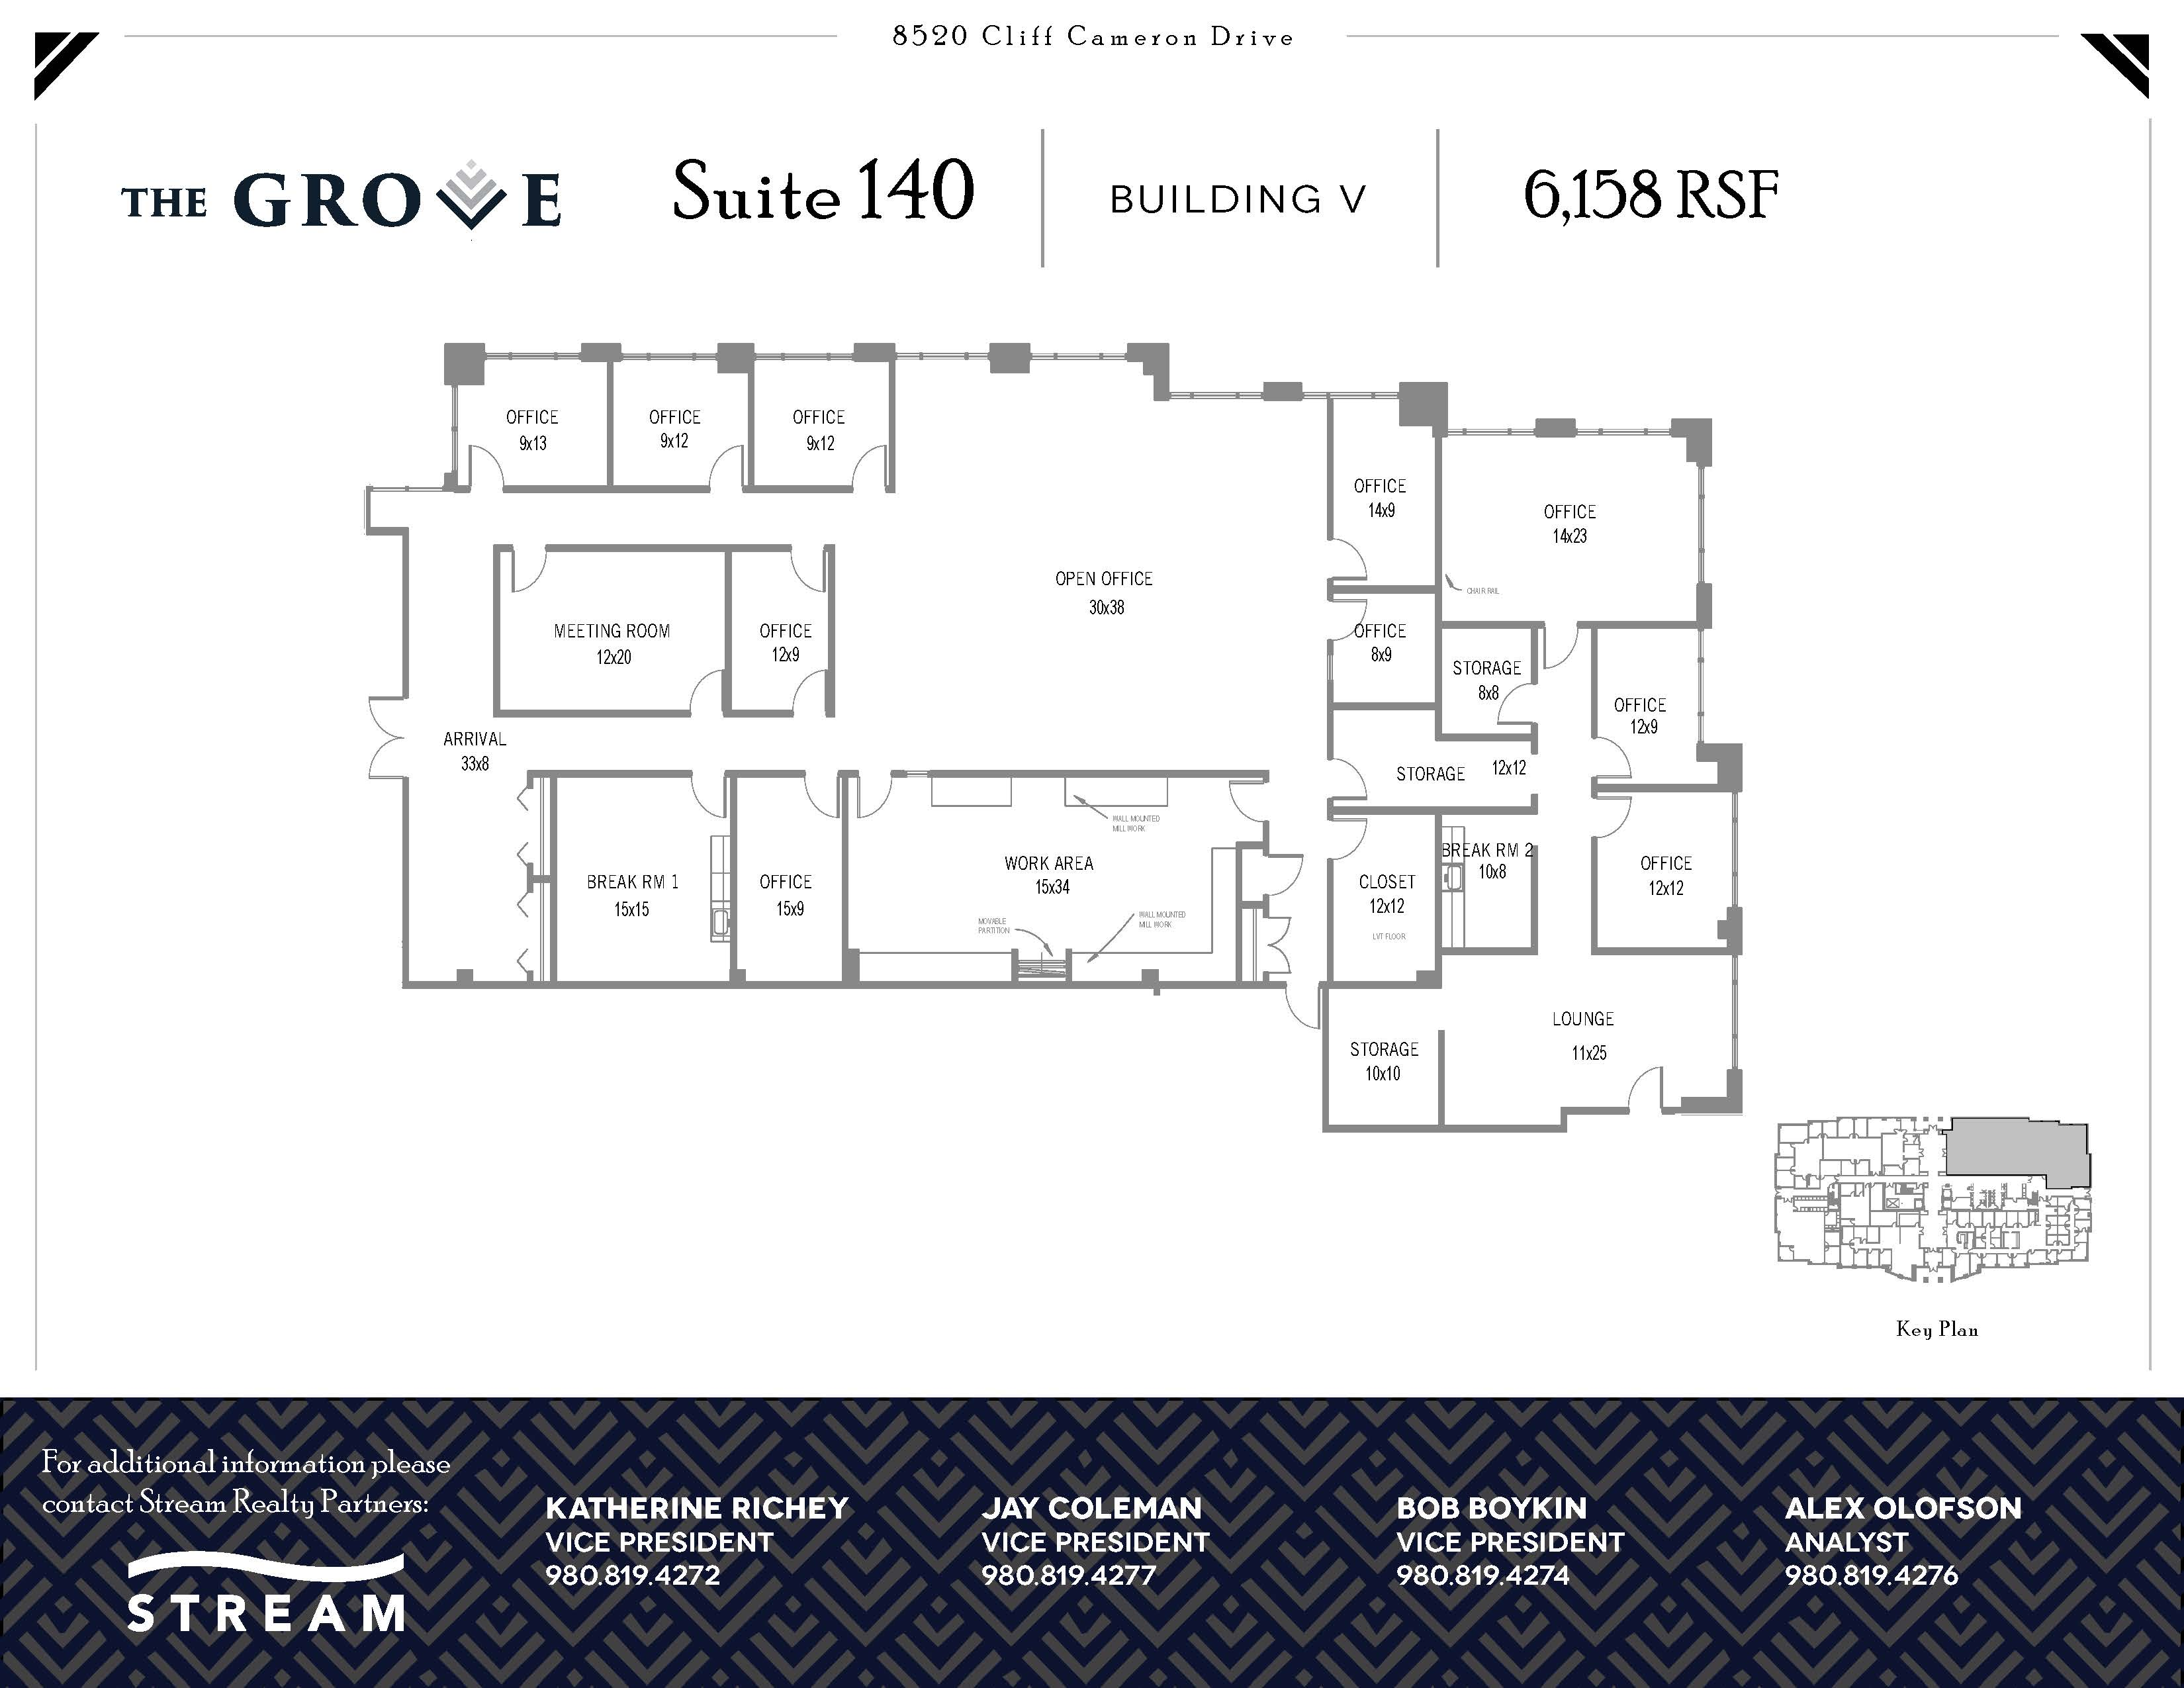 The Grove V [8520] -- Suite 140 -- 6,158 RSF